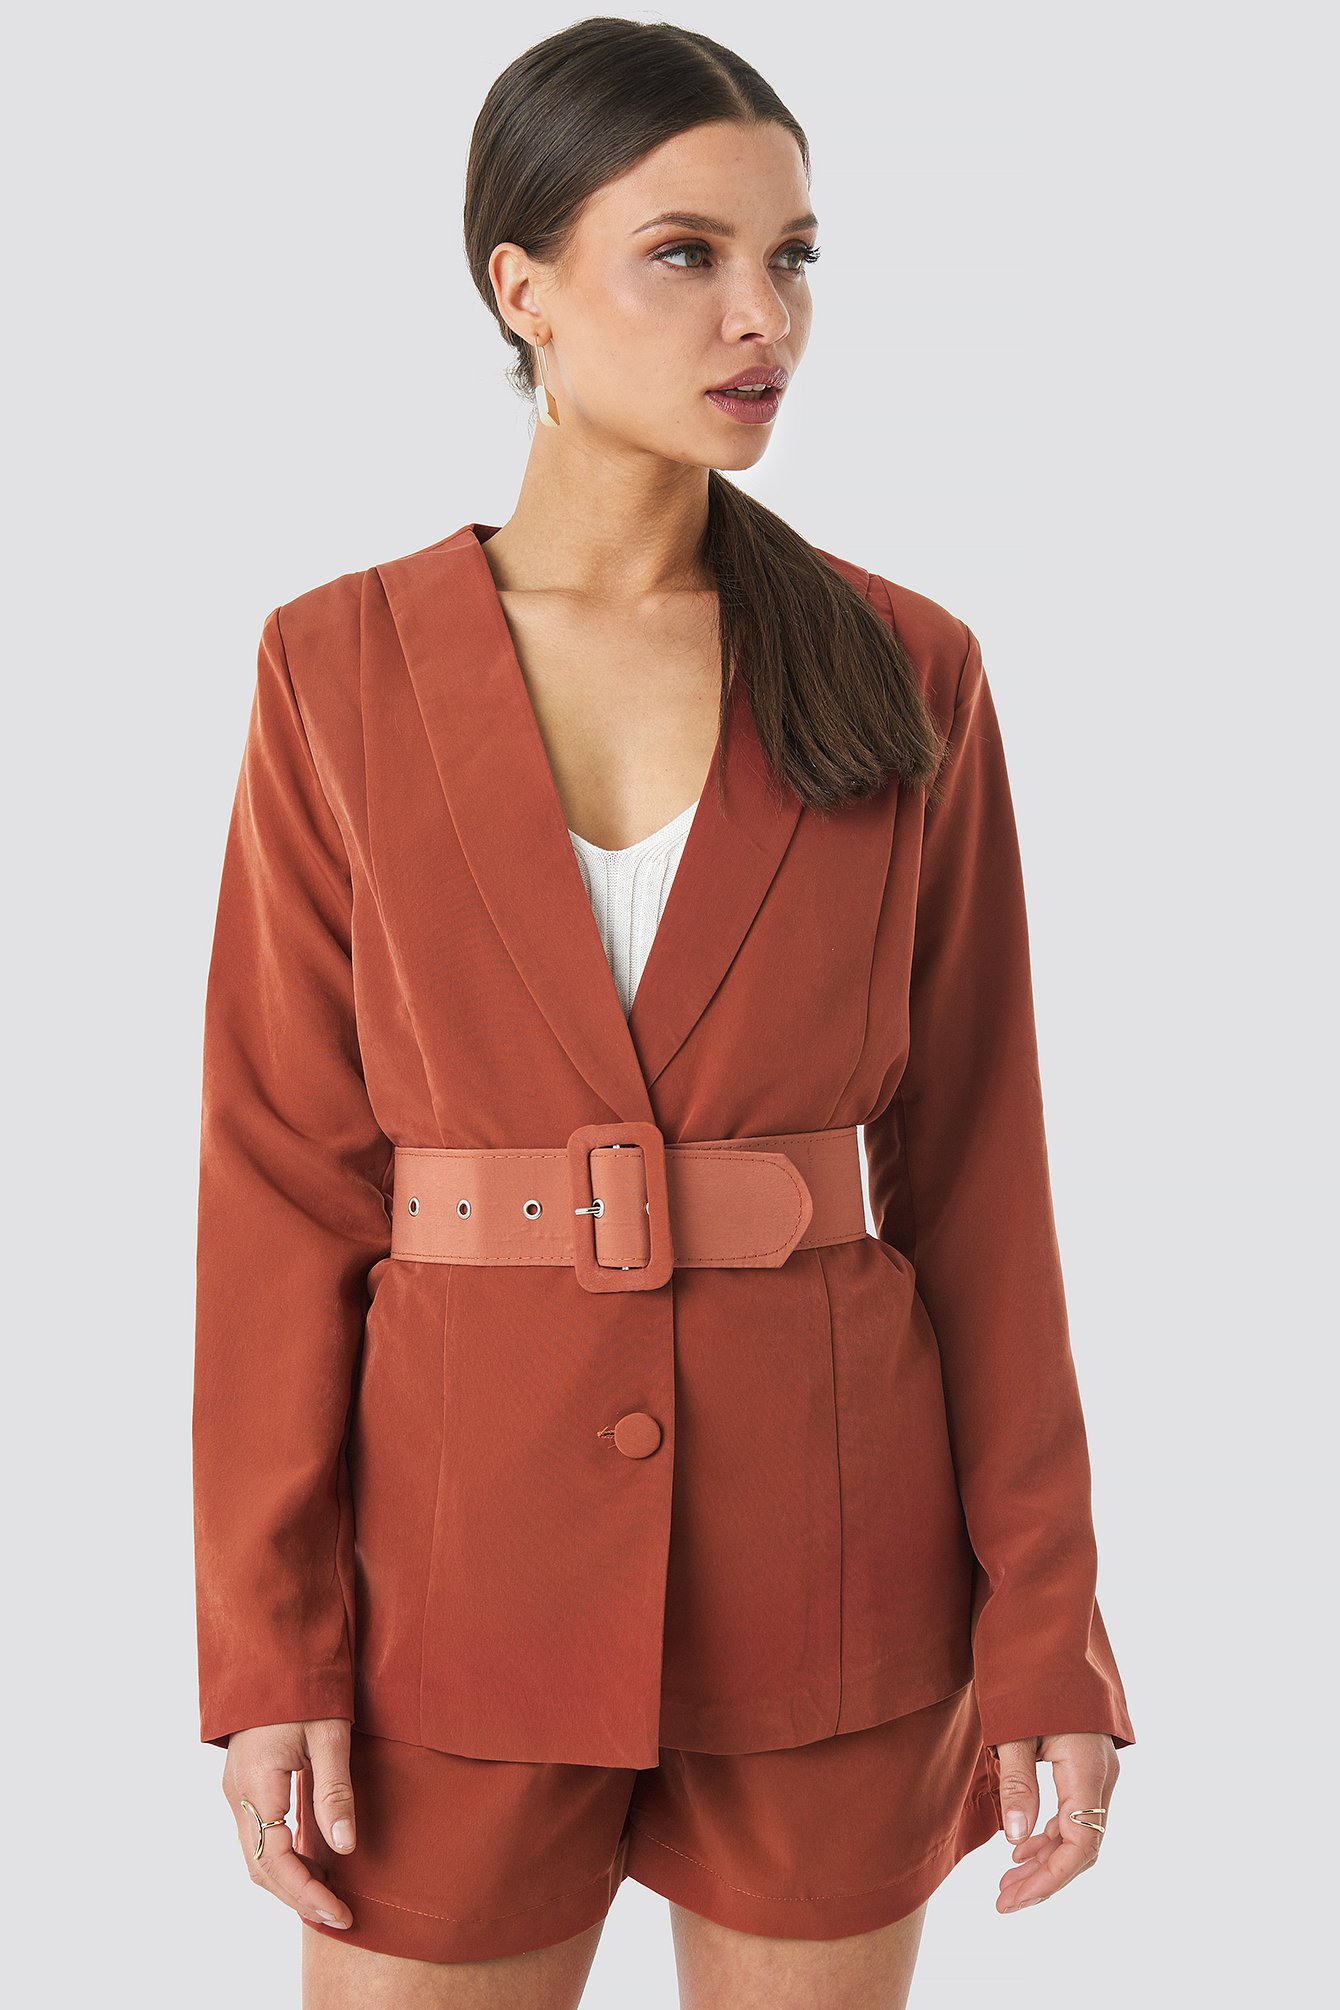 trendyol -  Yol Belt Detailed Blazer - Red